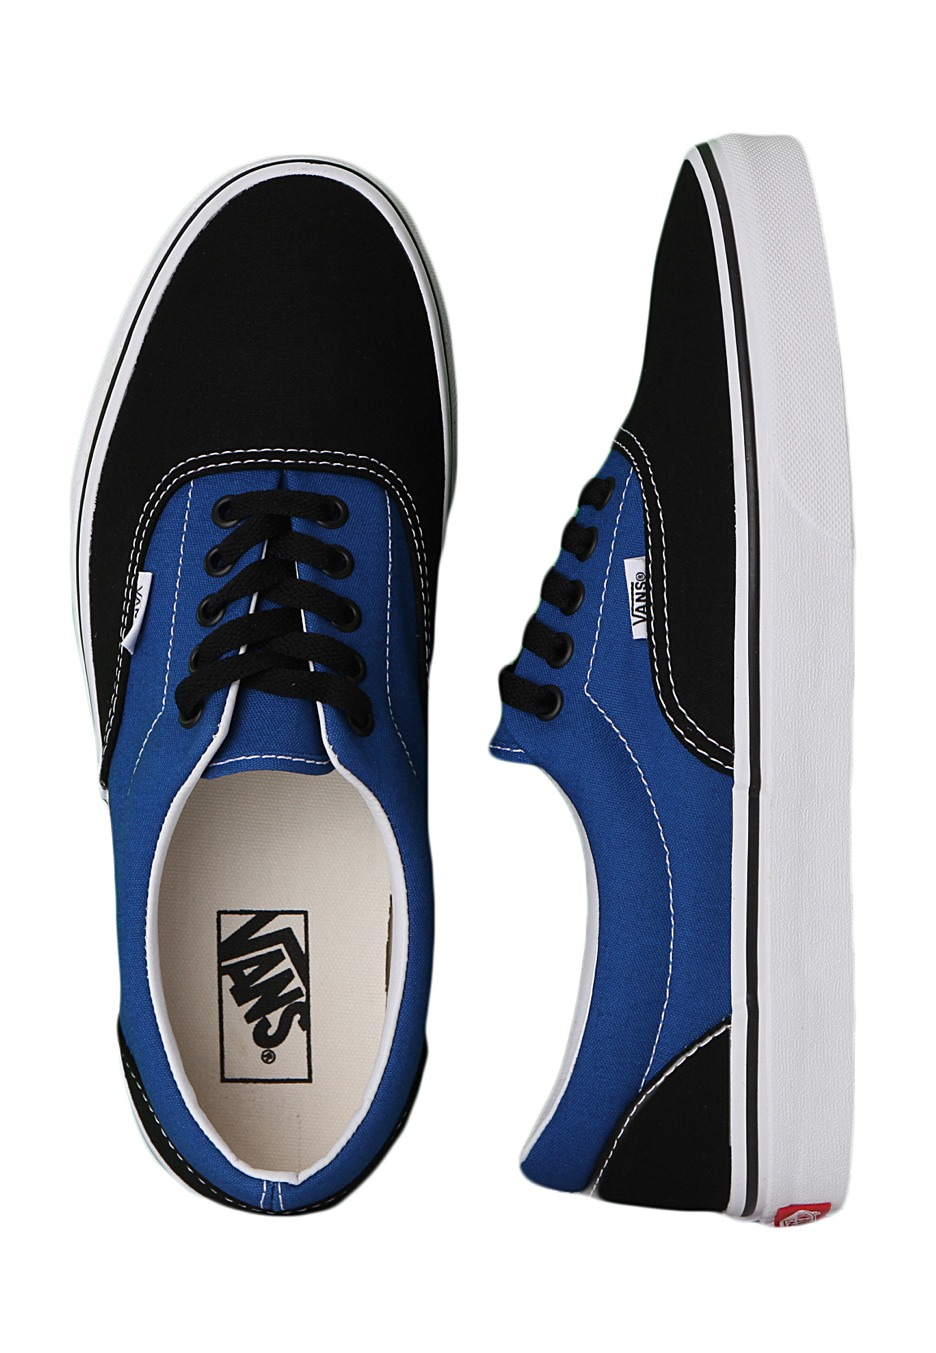 Vans - Era 2 Tone Black Snorkel Blue - Shoes - Impericon.com UK c09b582c38